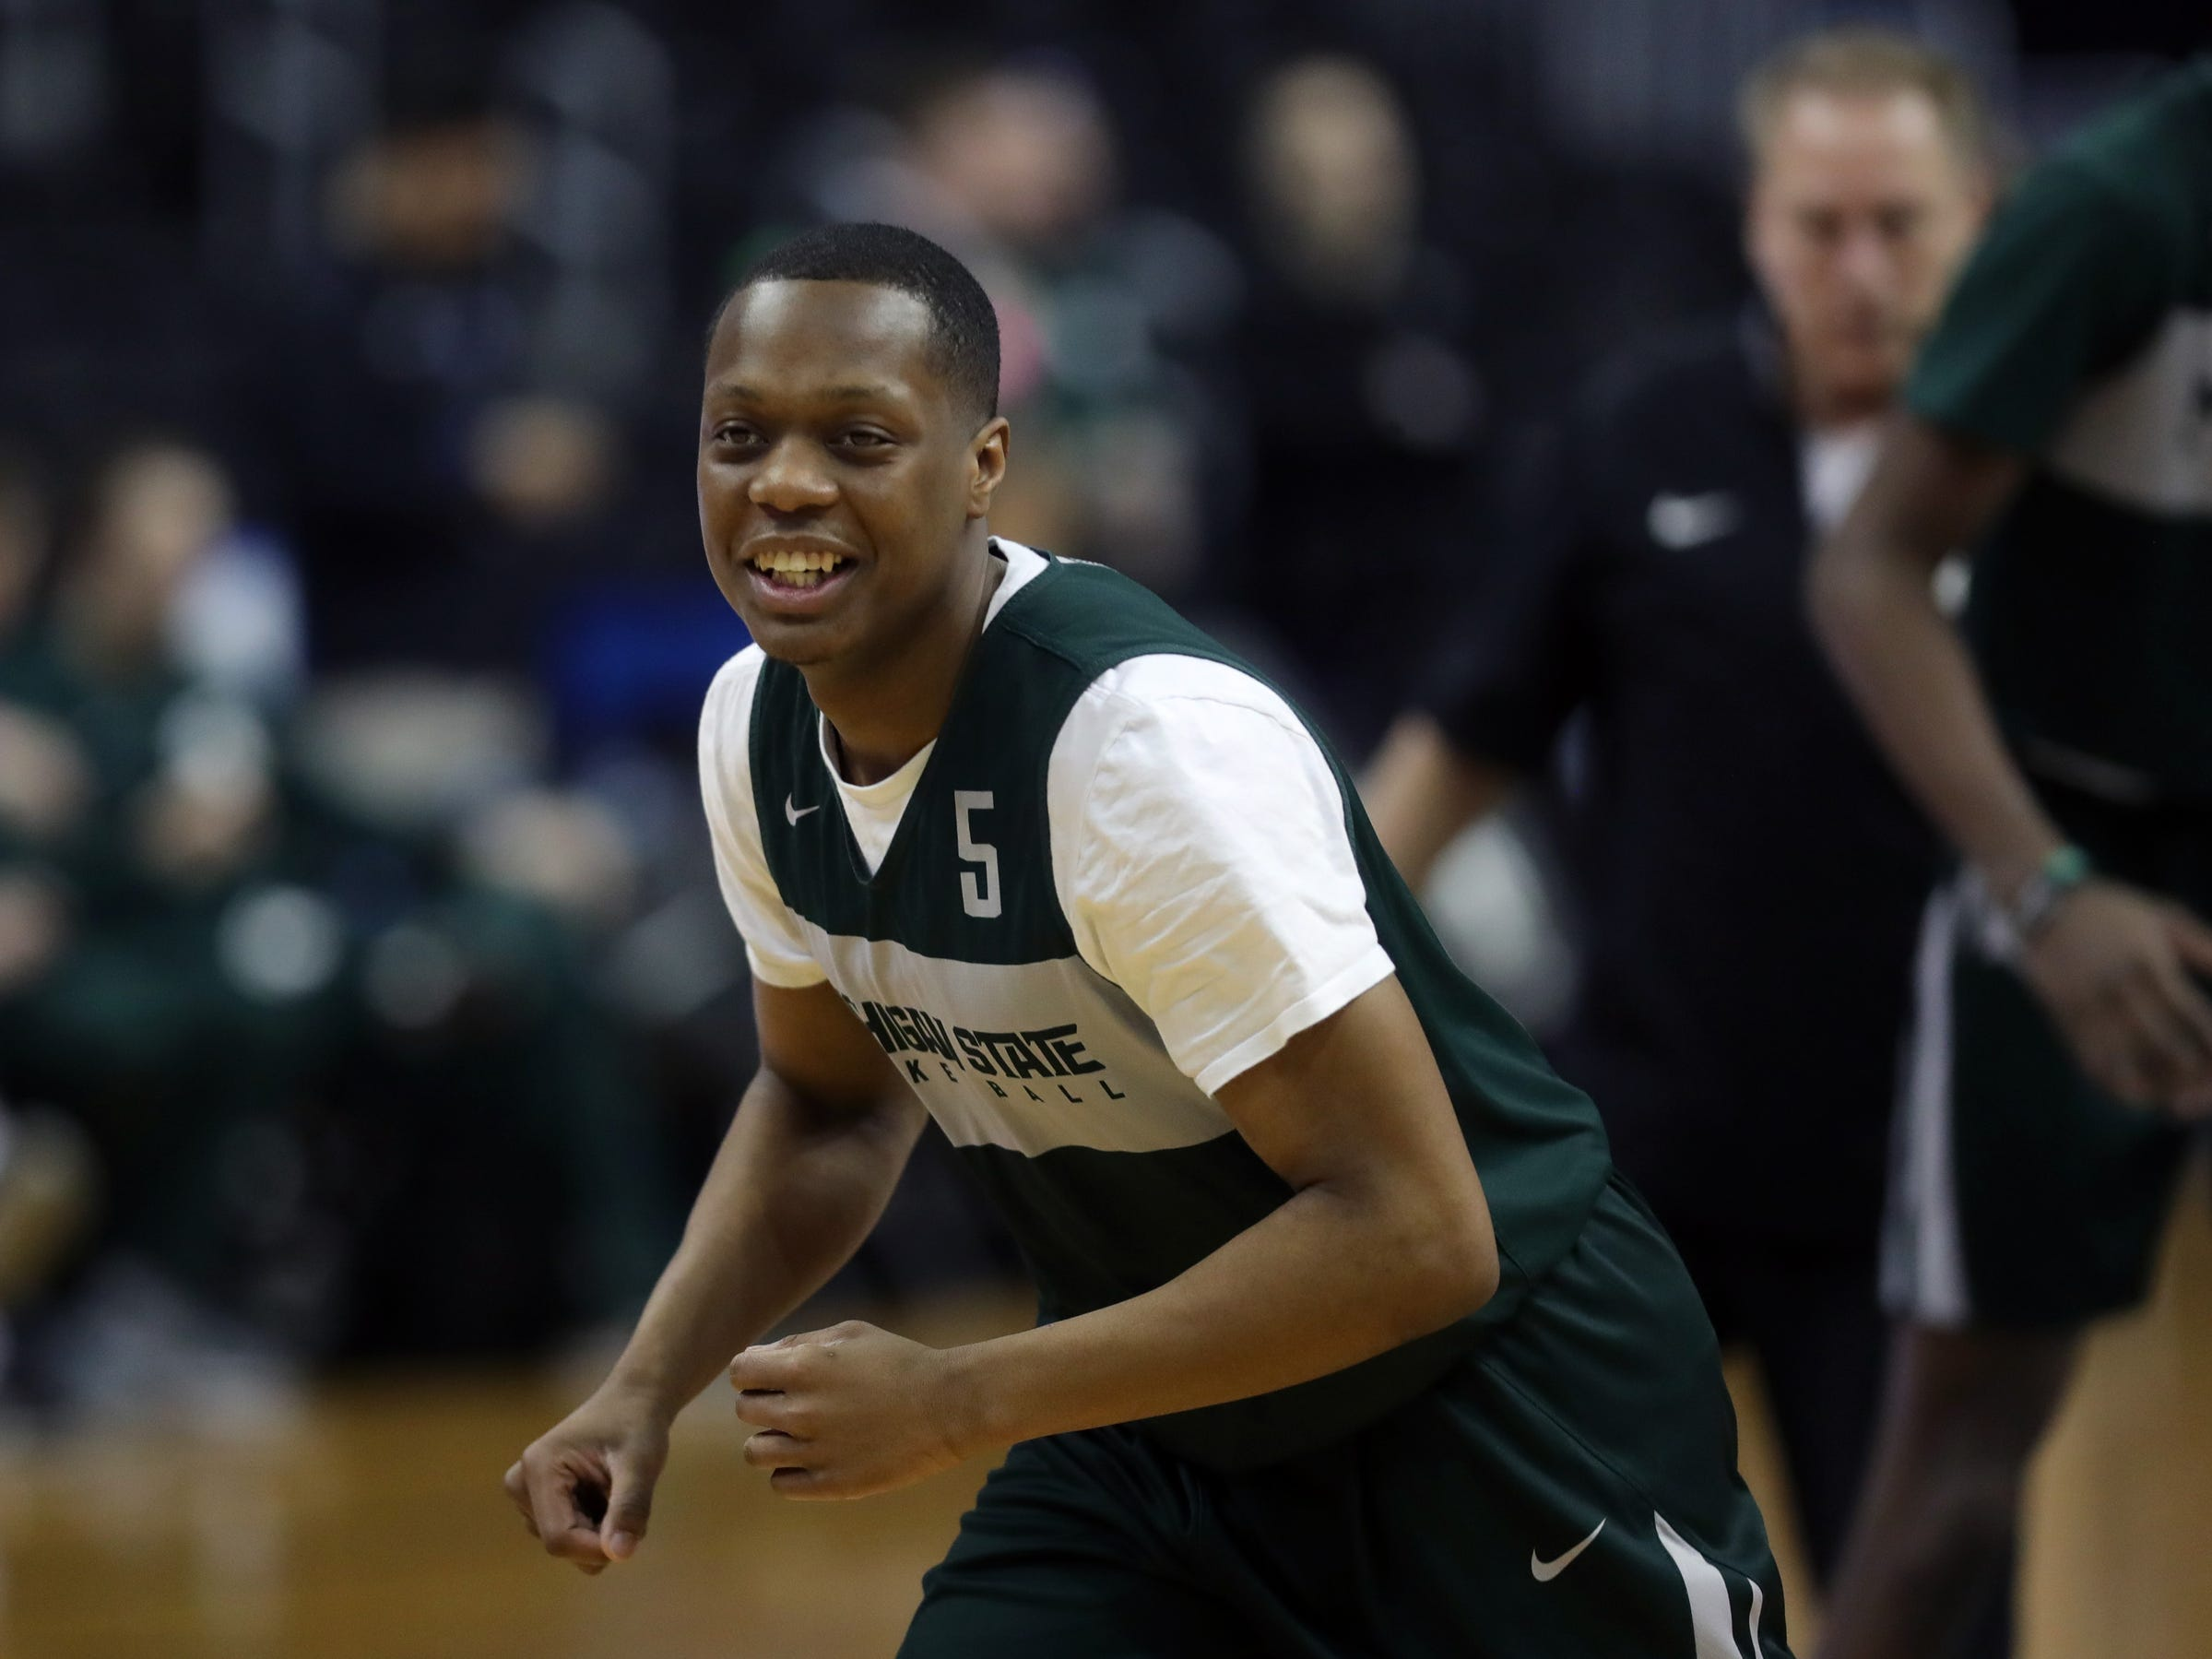 Michigan State guard Cassius Winston practices for their Sweet 16 game against LSU, Thursday, March 28, 2019 at the Capital One Arena in Washington, D.C.